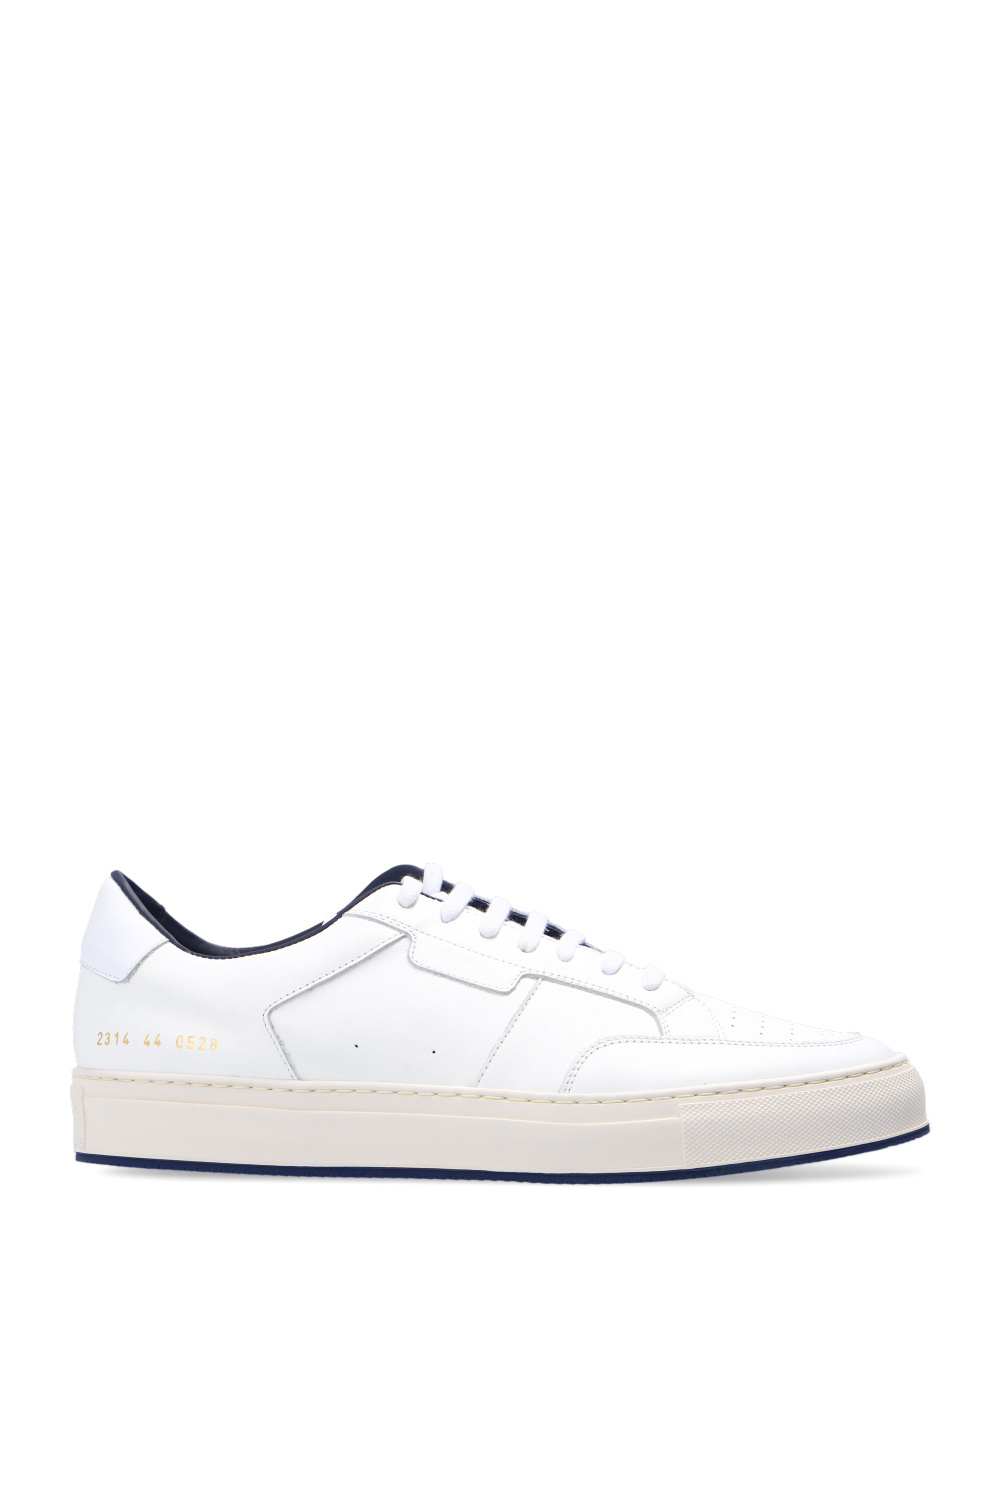 Common Projects 'Tennis' sneakers